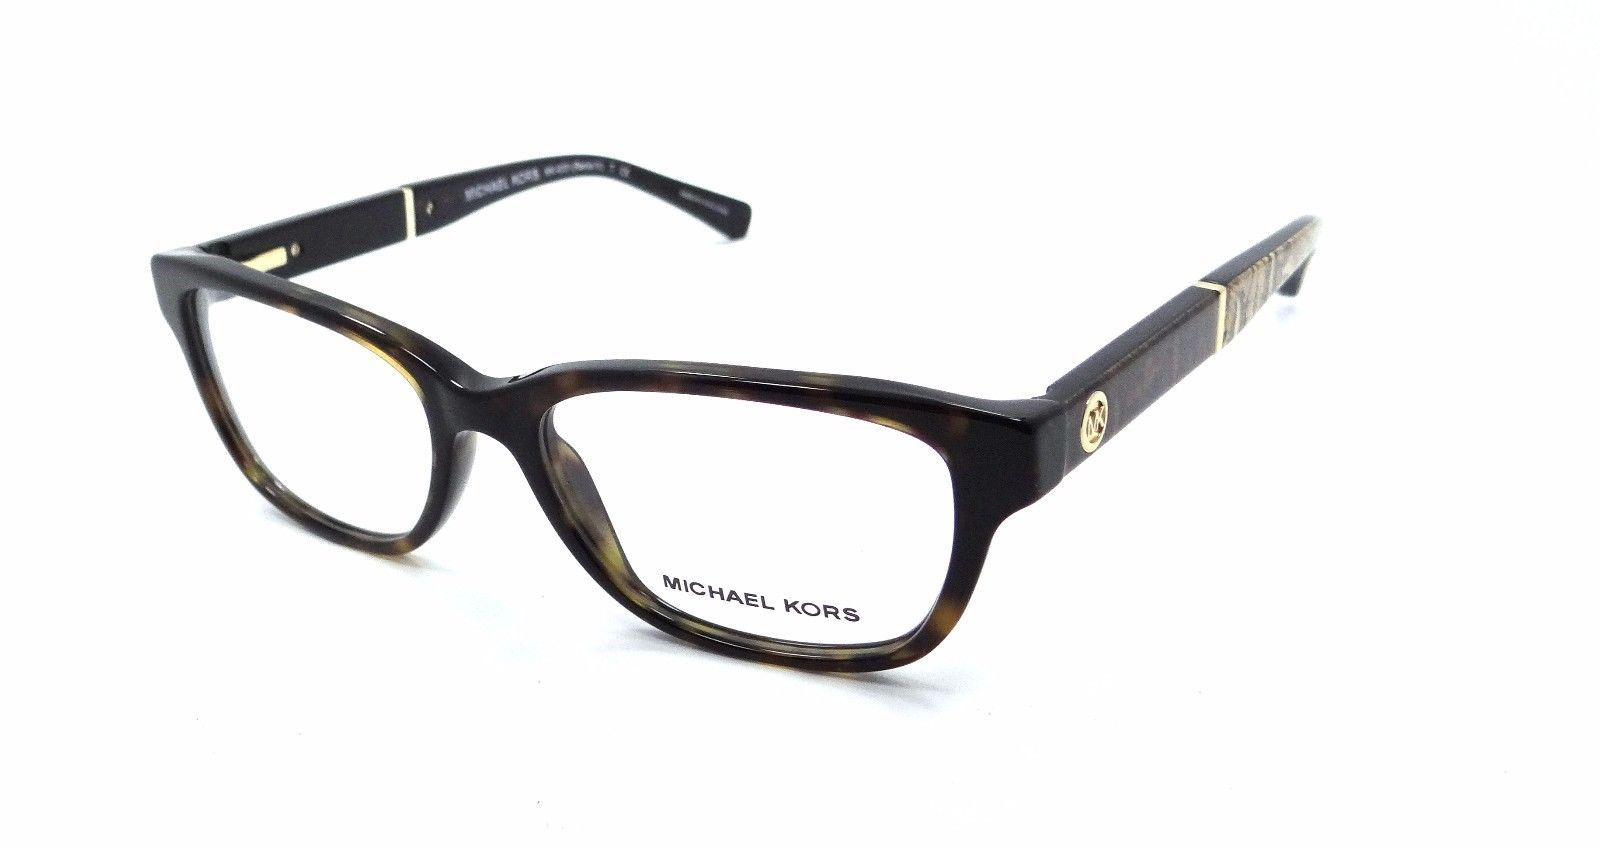 84ecf85570 New Michael Kors Rx Eyeglasses Frames MK and 50 similar items. S l1600